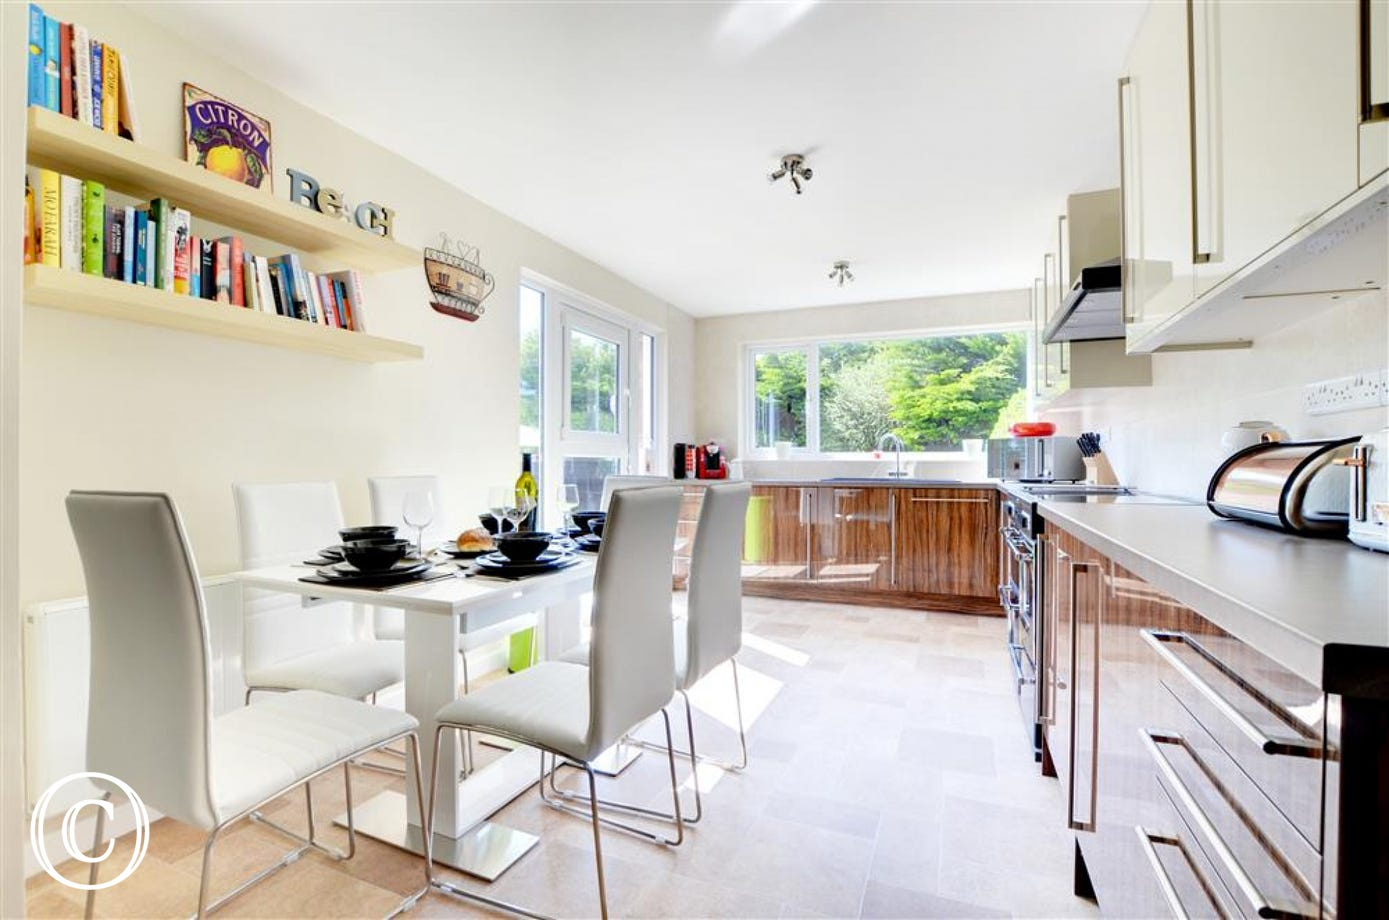 The kitchen area is light, airy and well equipped, including a Tassimo coffee machine